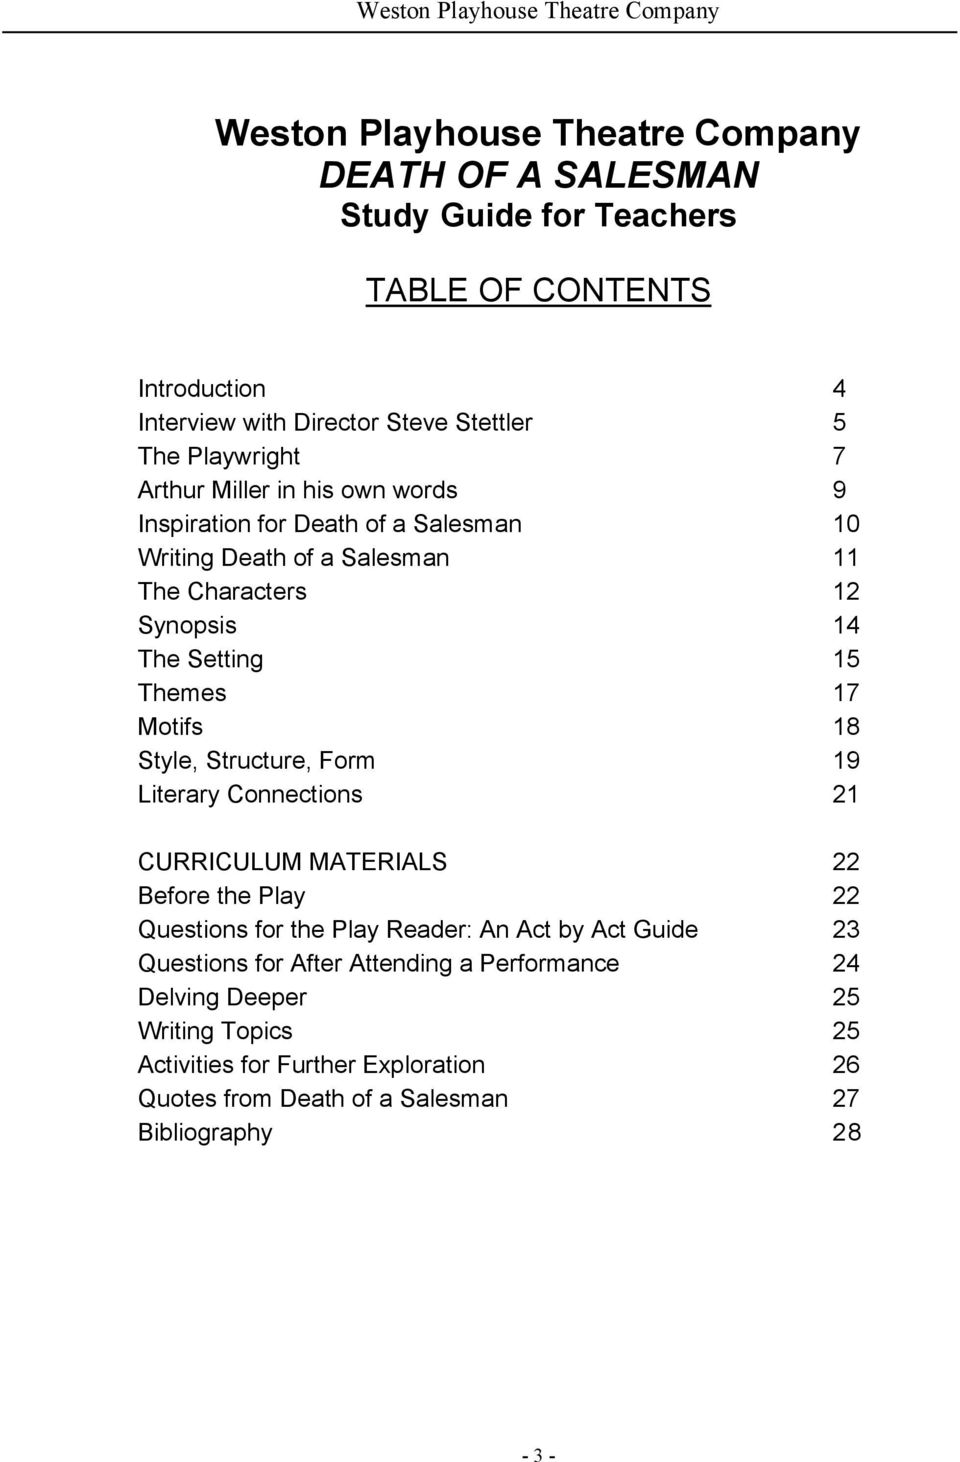 Setting 15 Themes 17 Motifs 18 Style, Structure, Form 19 Literary Connections 21 CURRICULUM MATERIALS 22 Before the Play 22 Questions for the Play Reader: An Act by Act